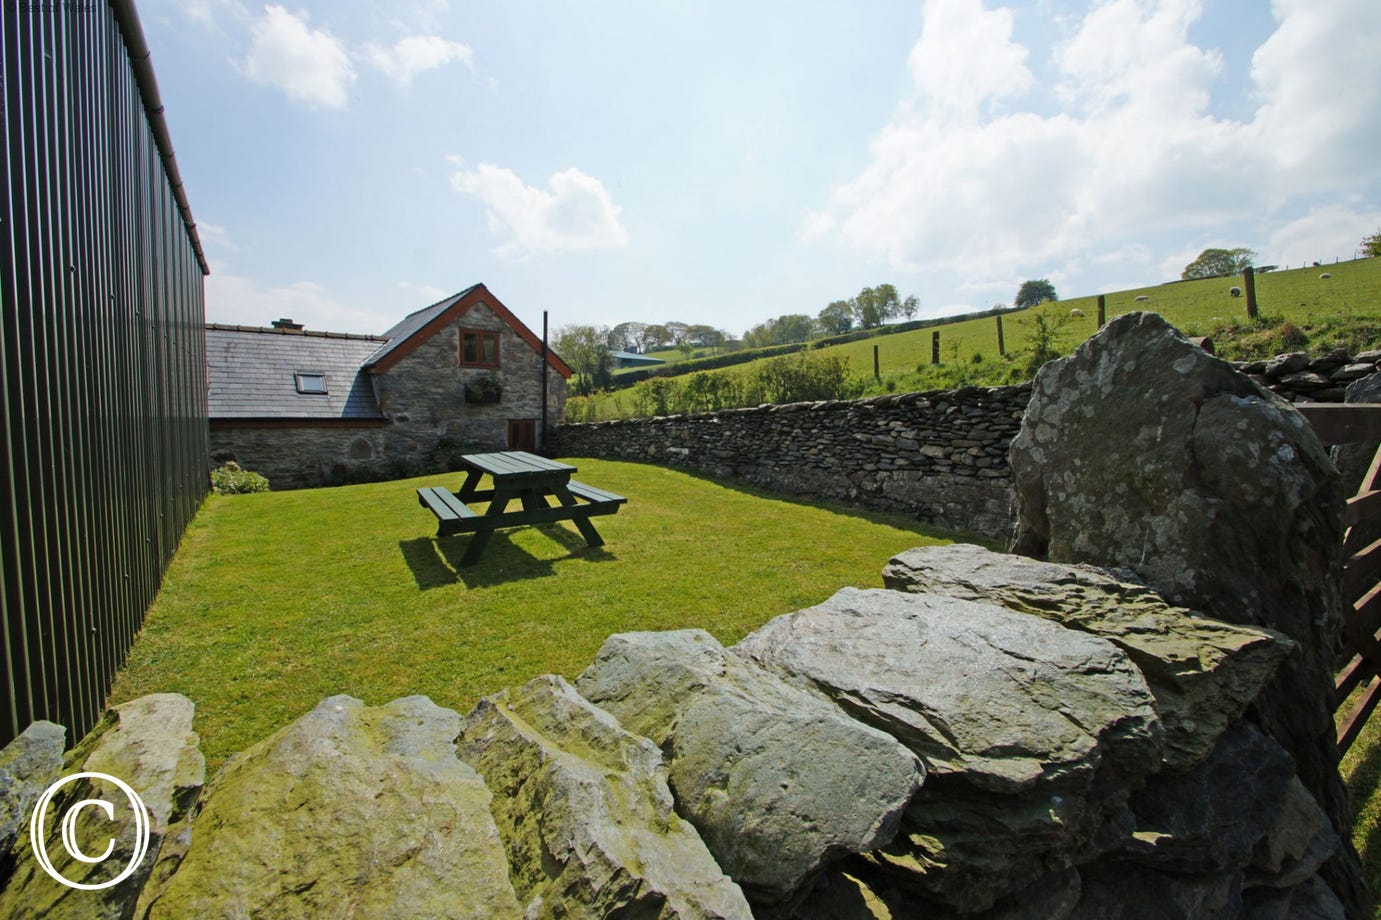 Enclosed lawn area with picnic bench at the rear of the cottage